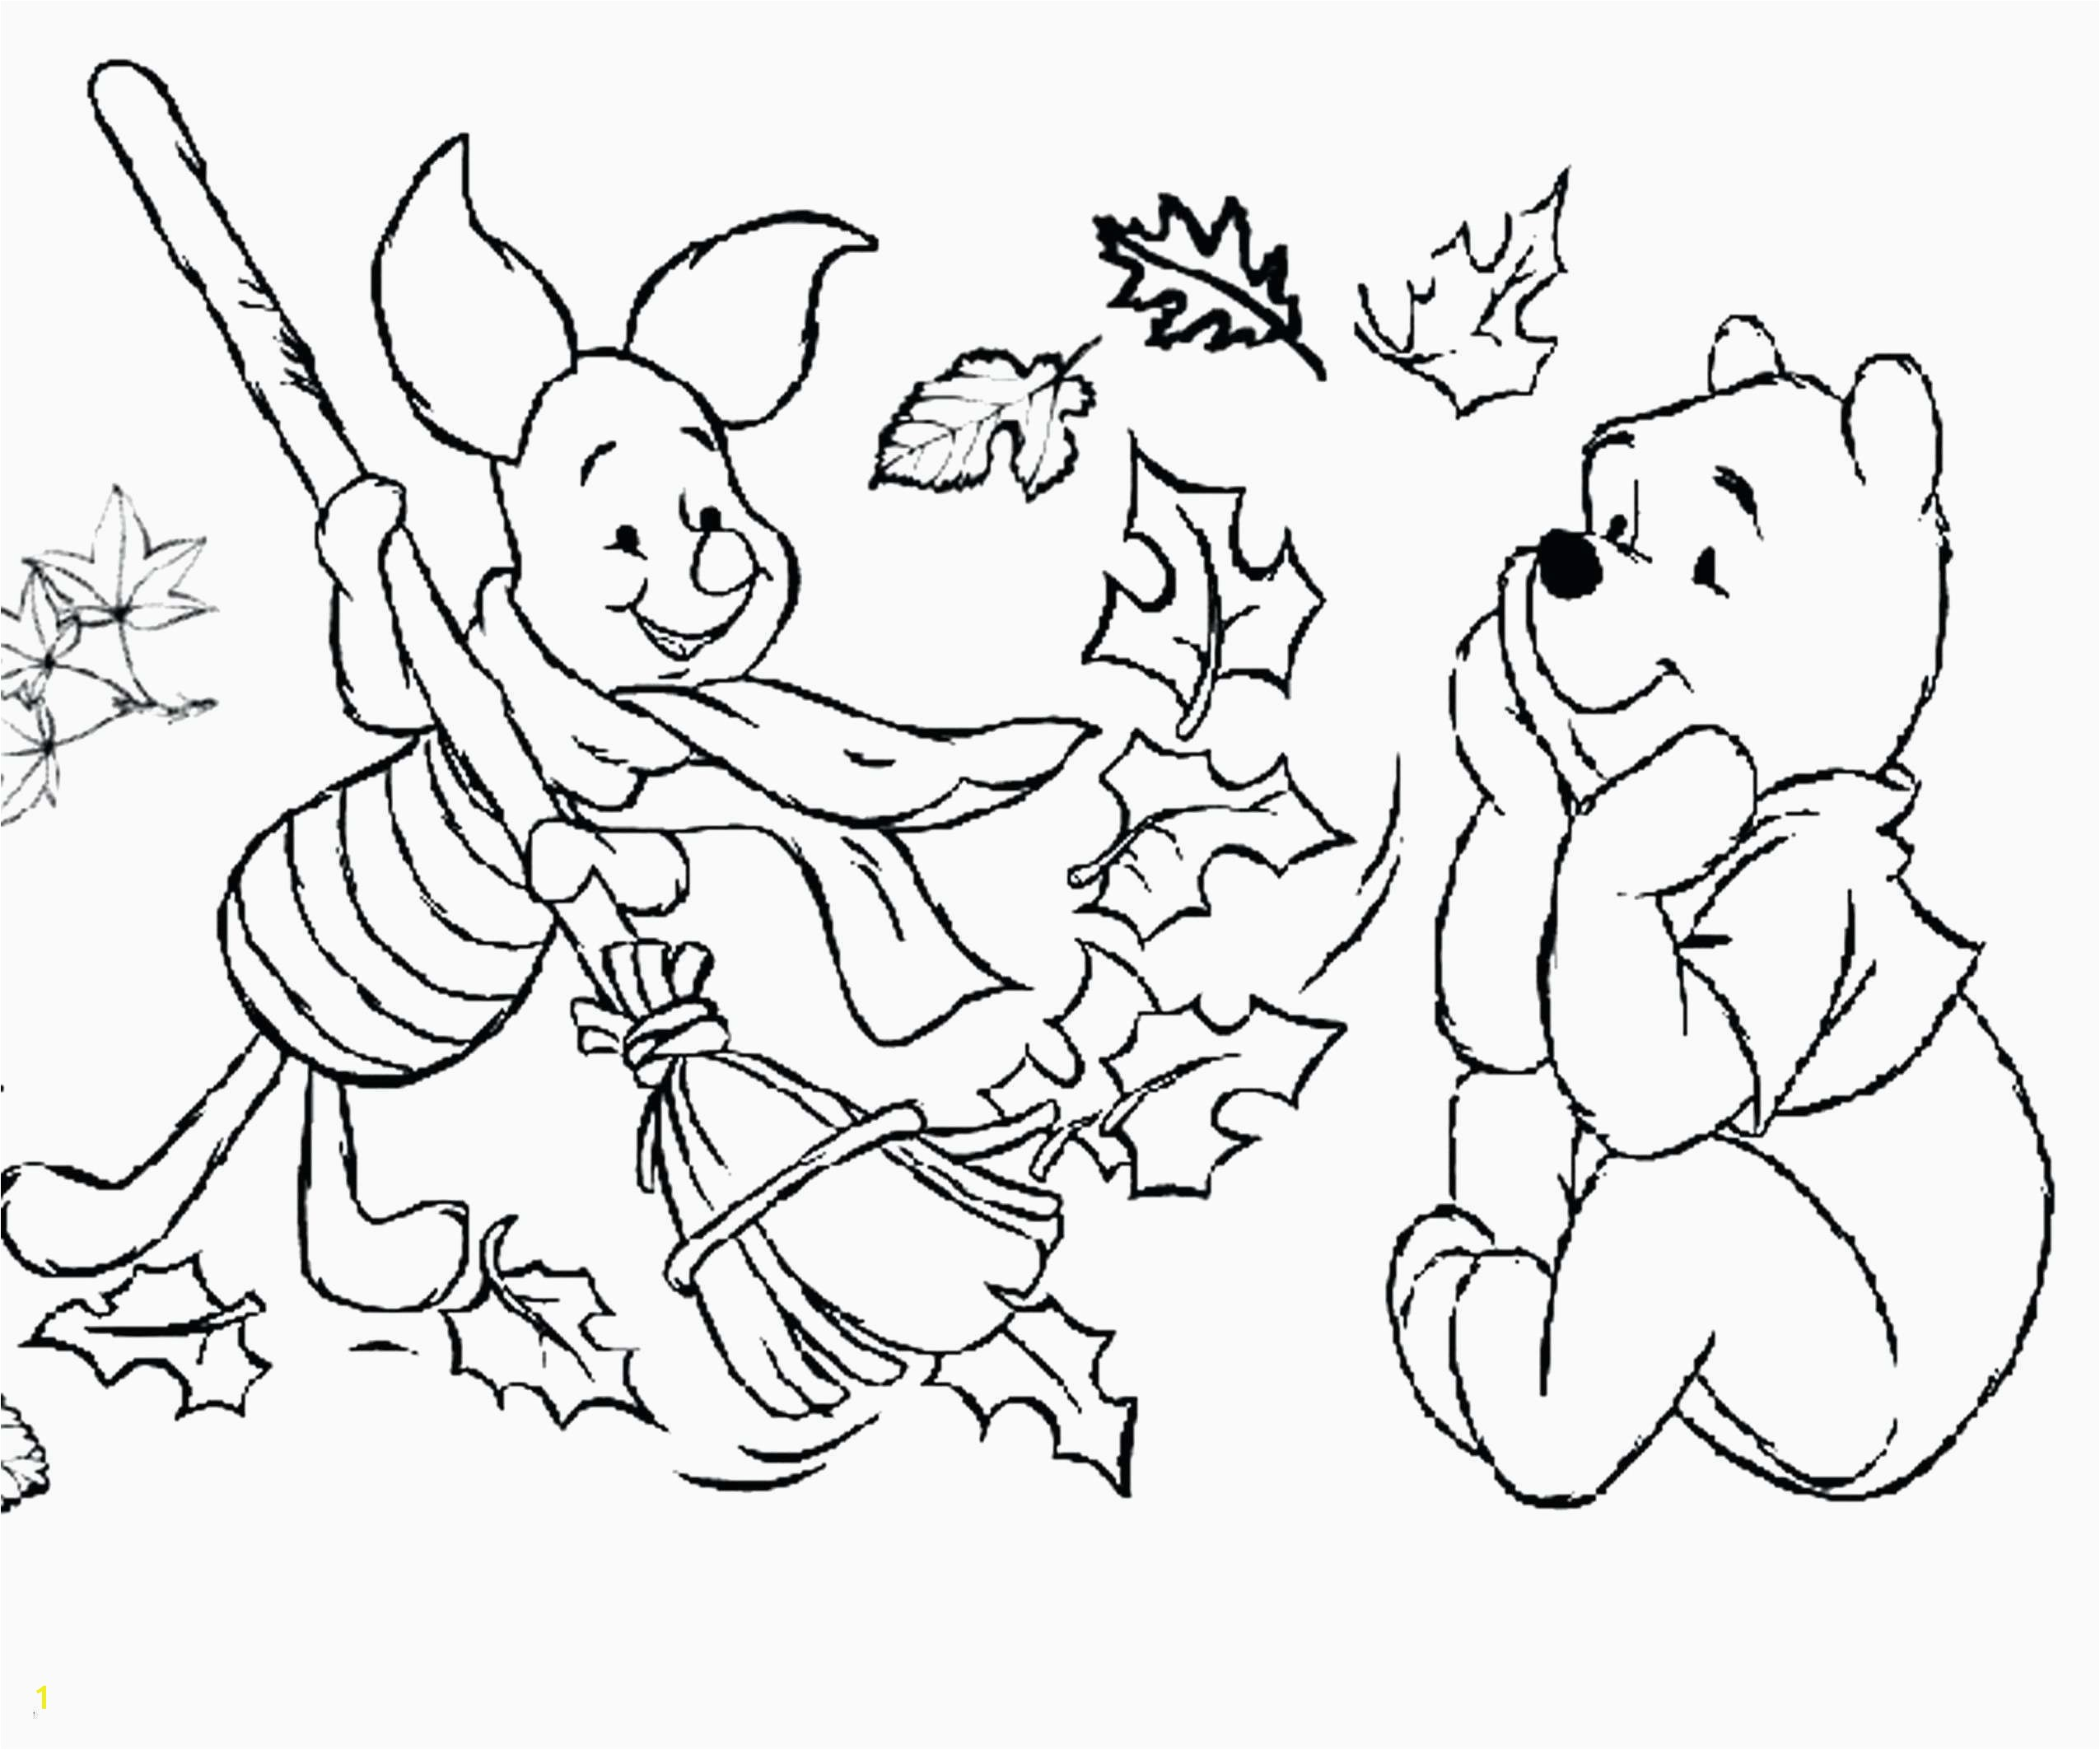 Disney Coloring Pages for Boys Free Disney Princess Coloring Pages for Kids Free Coloring Sheets